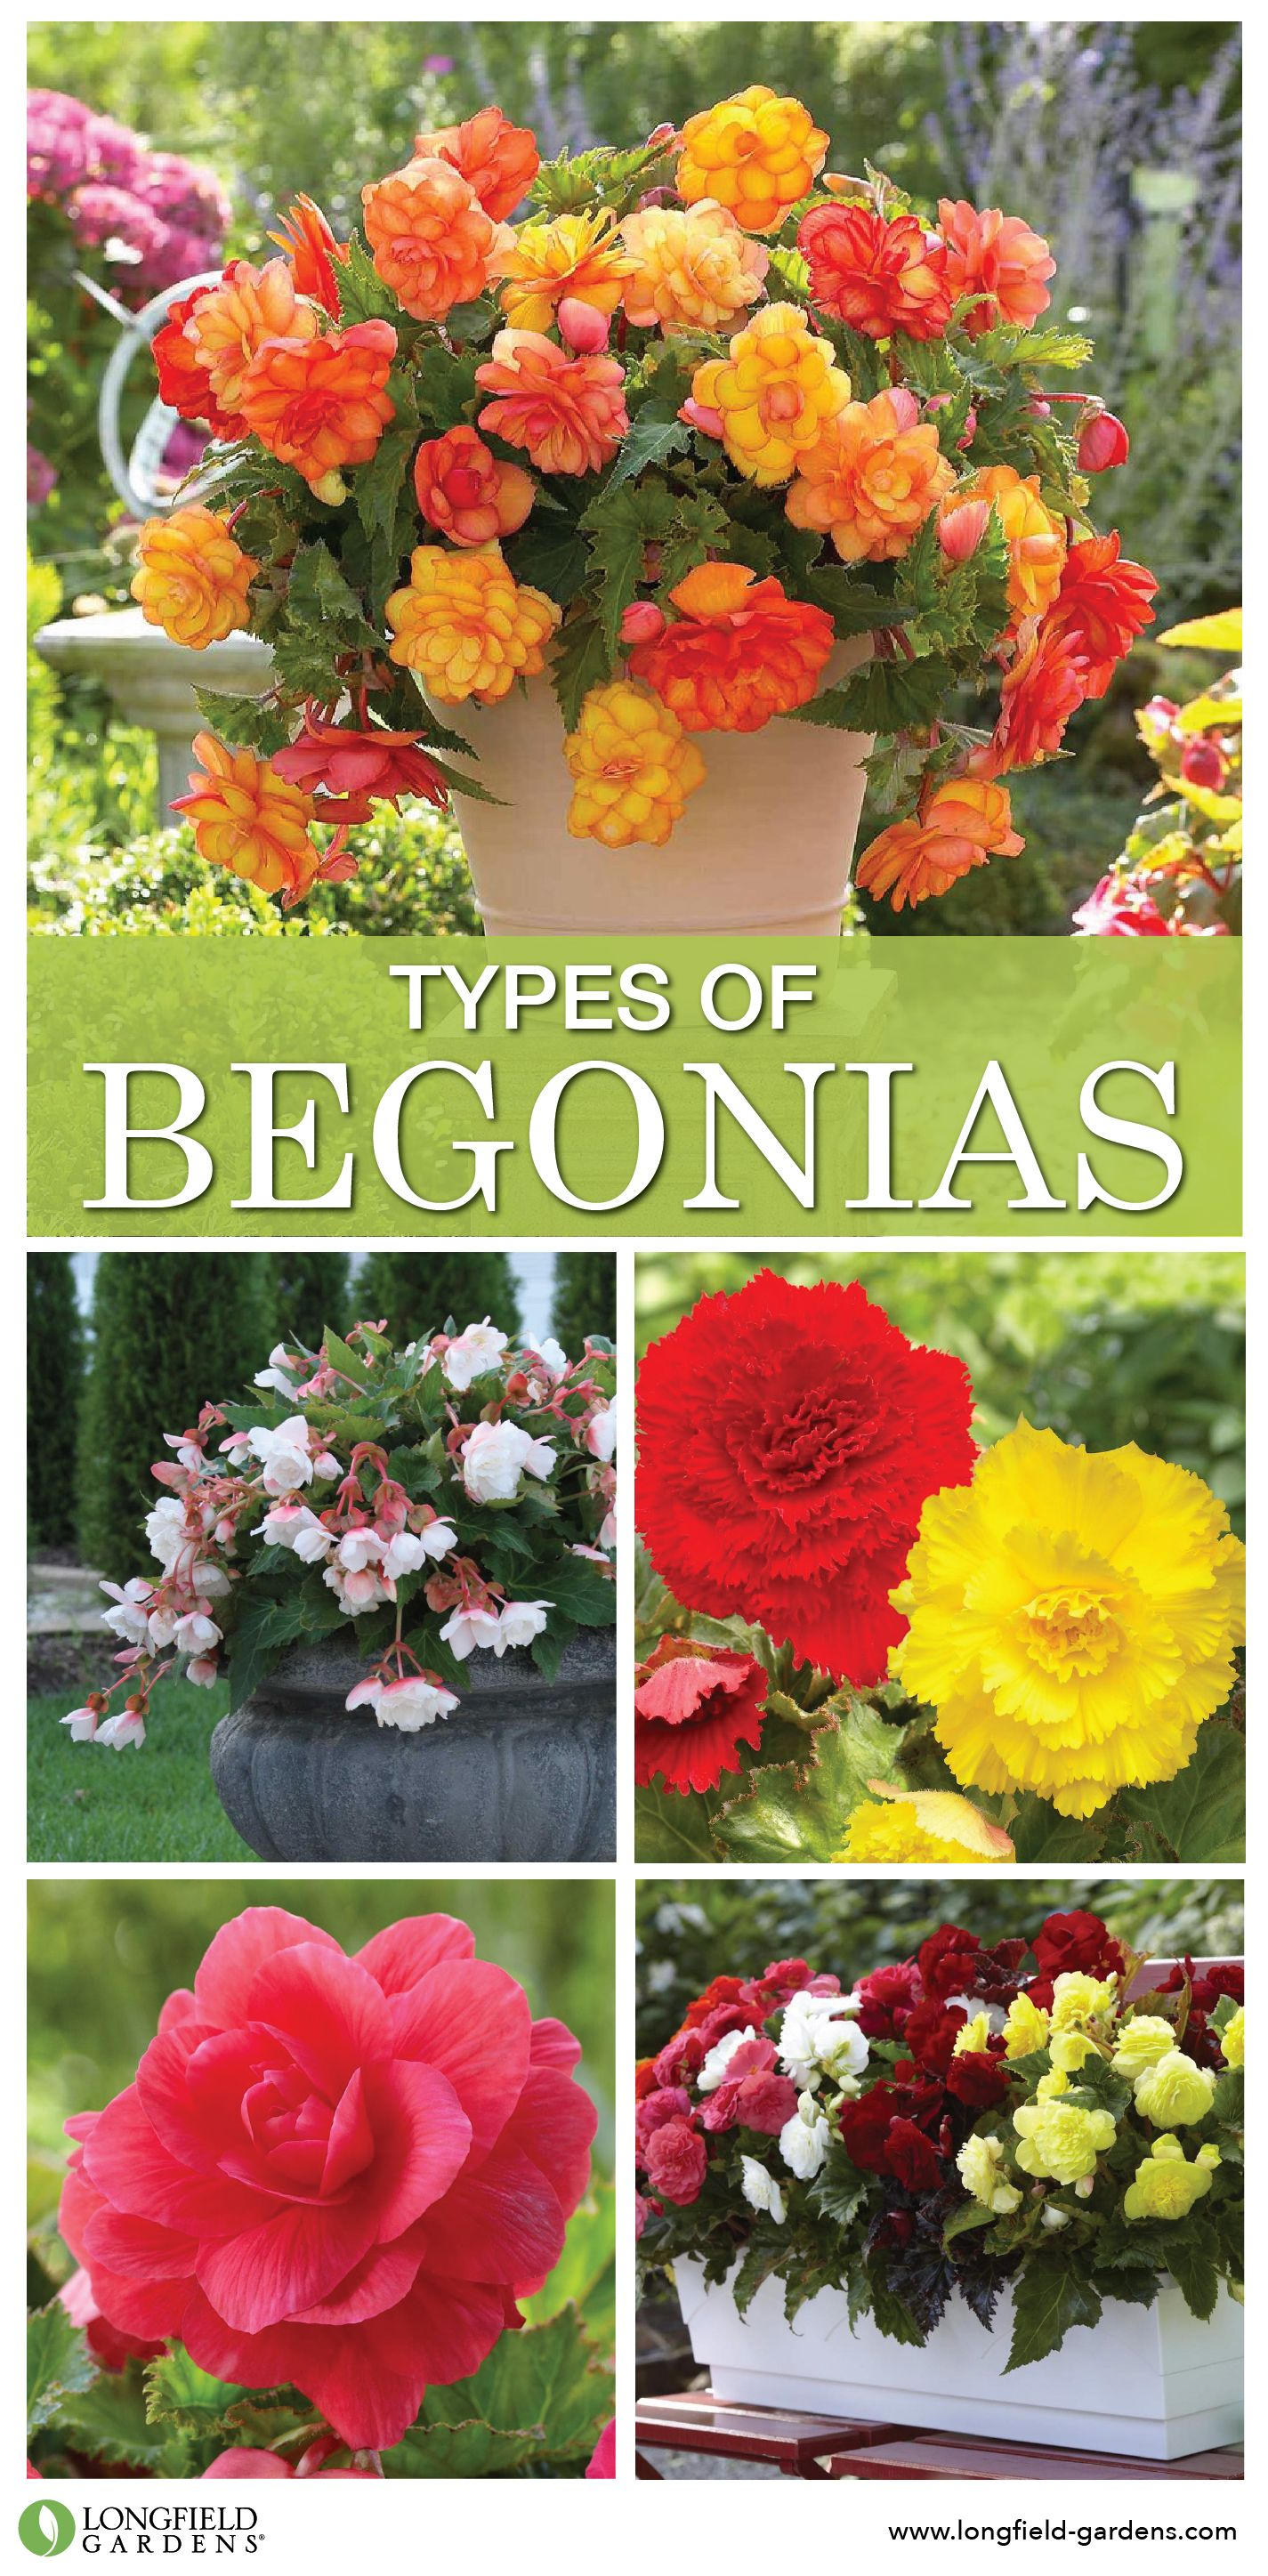 Tuberous Begonias Make It Easy To Add Splashes Of Bright Color To Shady Gardens And Containers The Plants Begi Tuberous Begonia Shade Plants Container Begonia